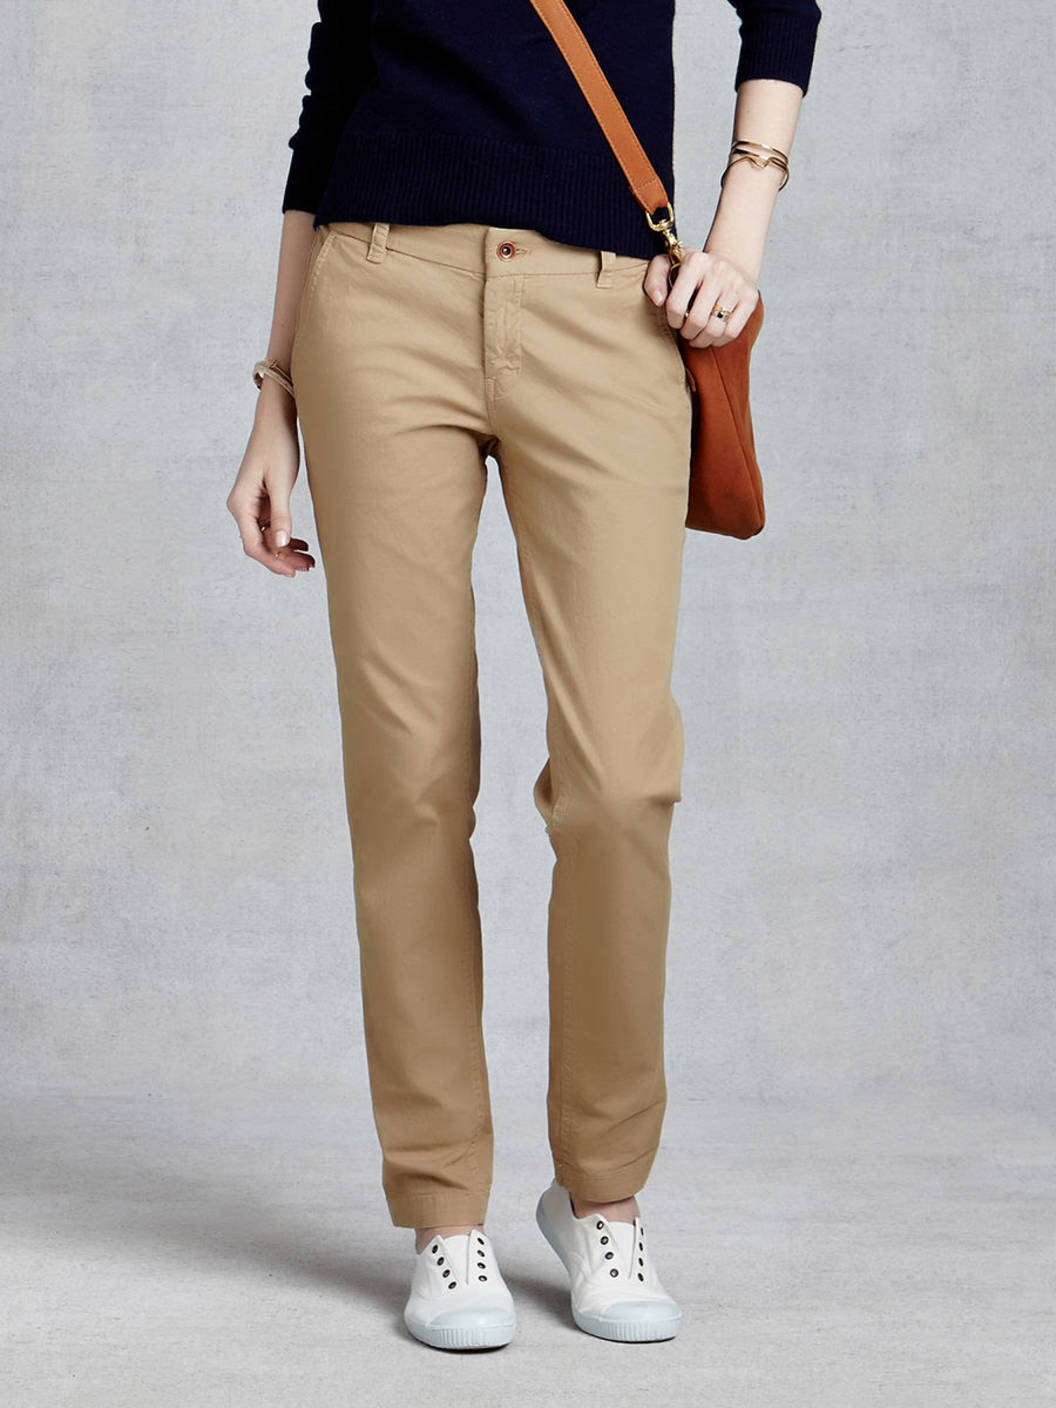 Reasons why you should get women chinos pant today